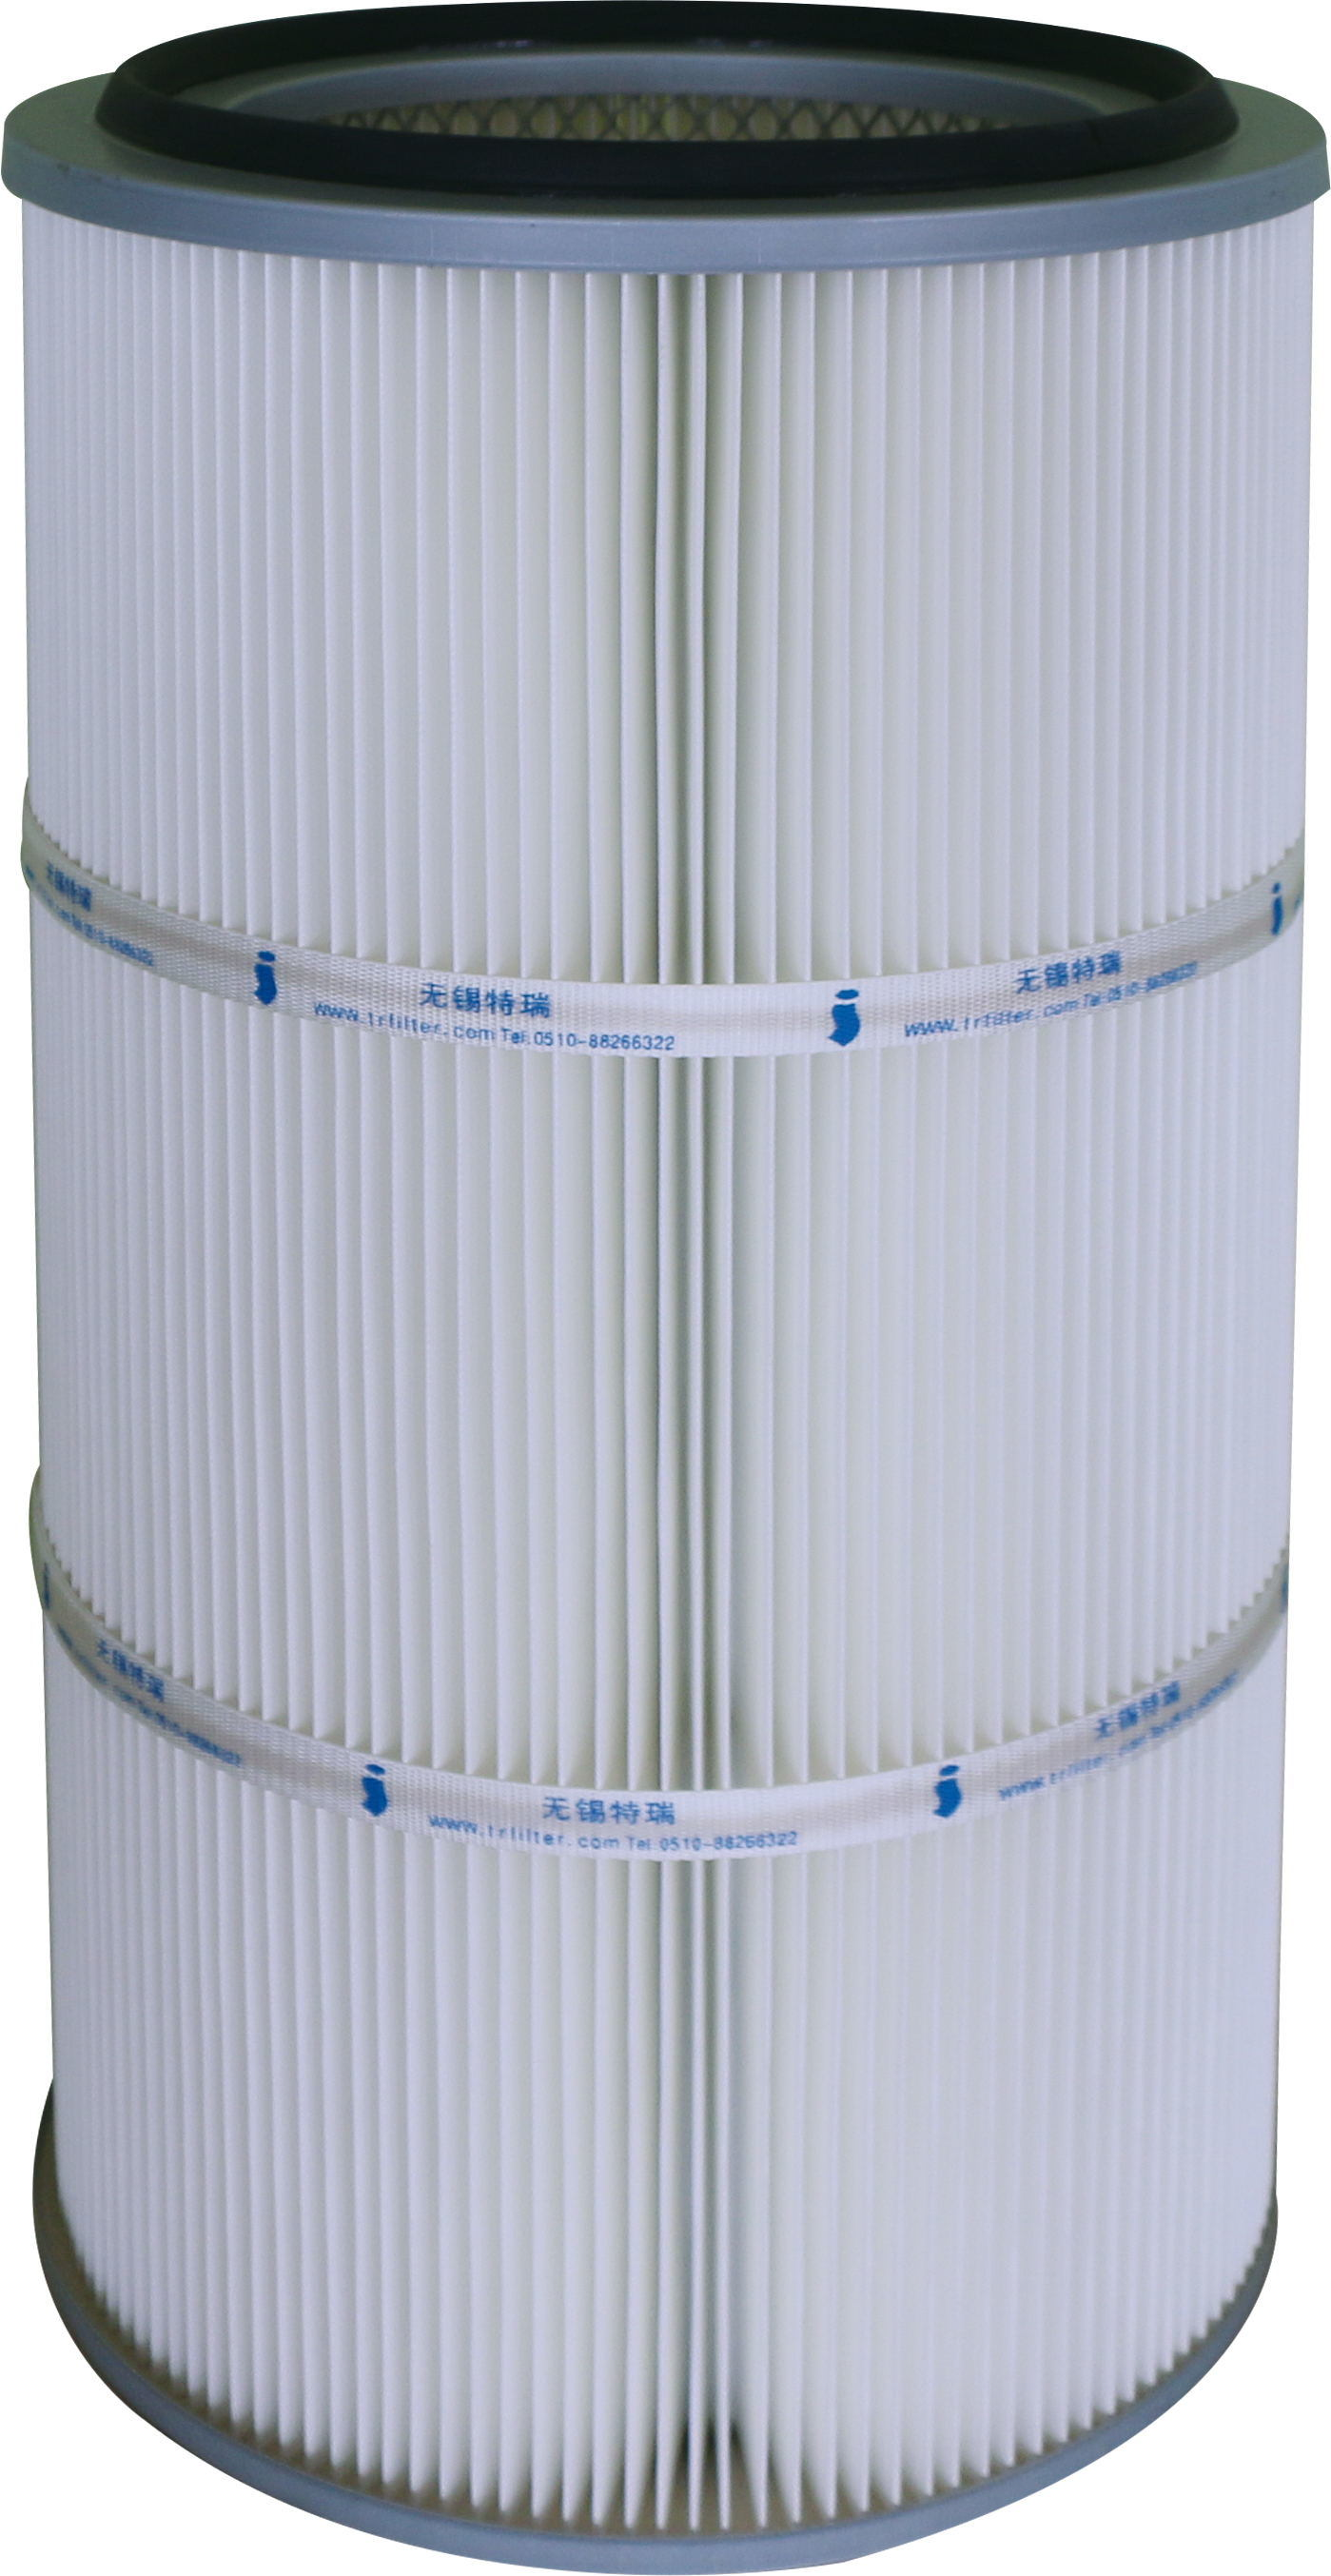 Manufacture of Polyester Cartridge Filter with PTFE Membrane